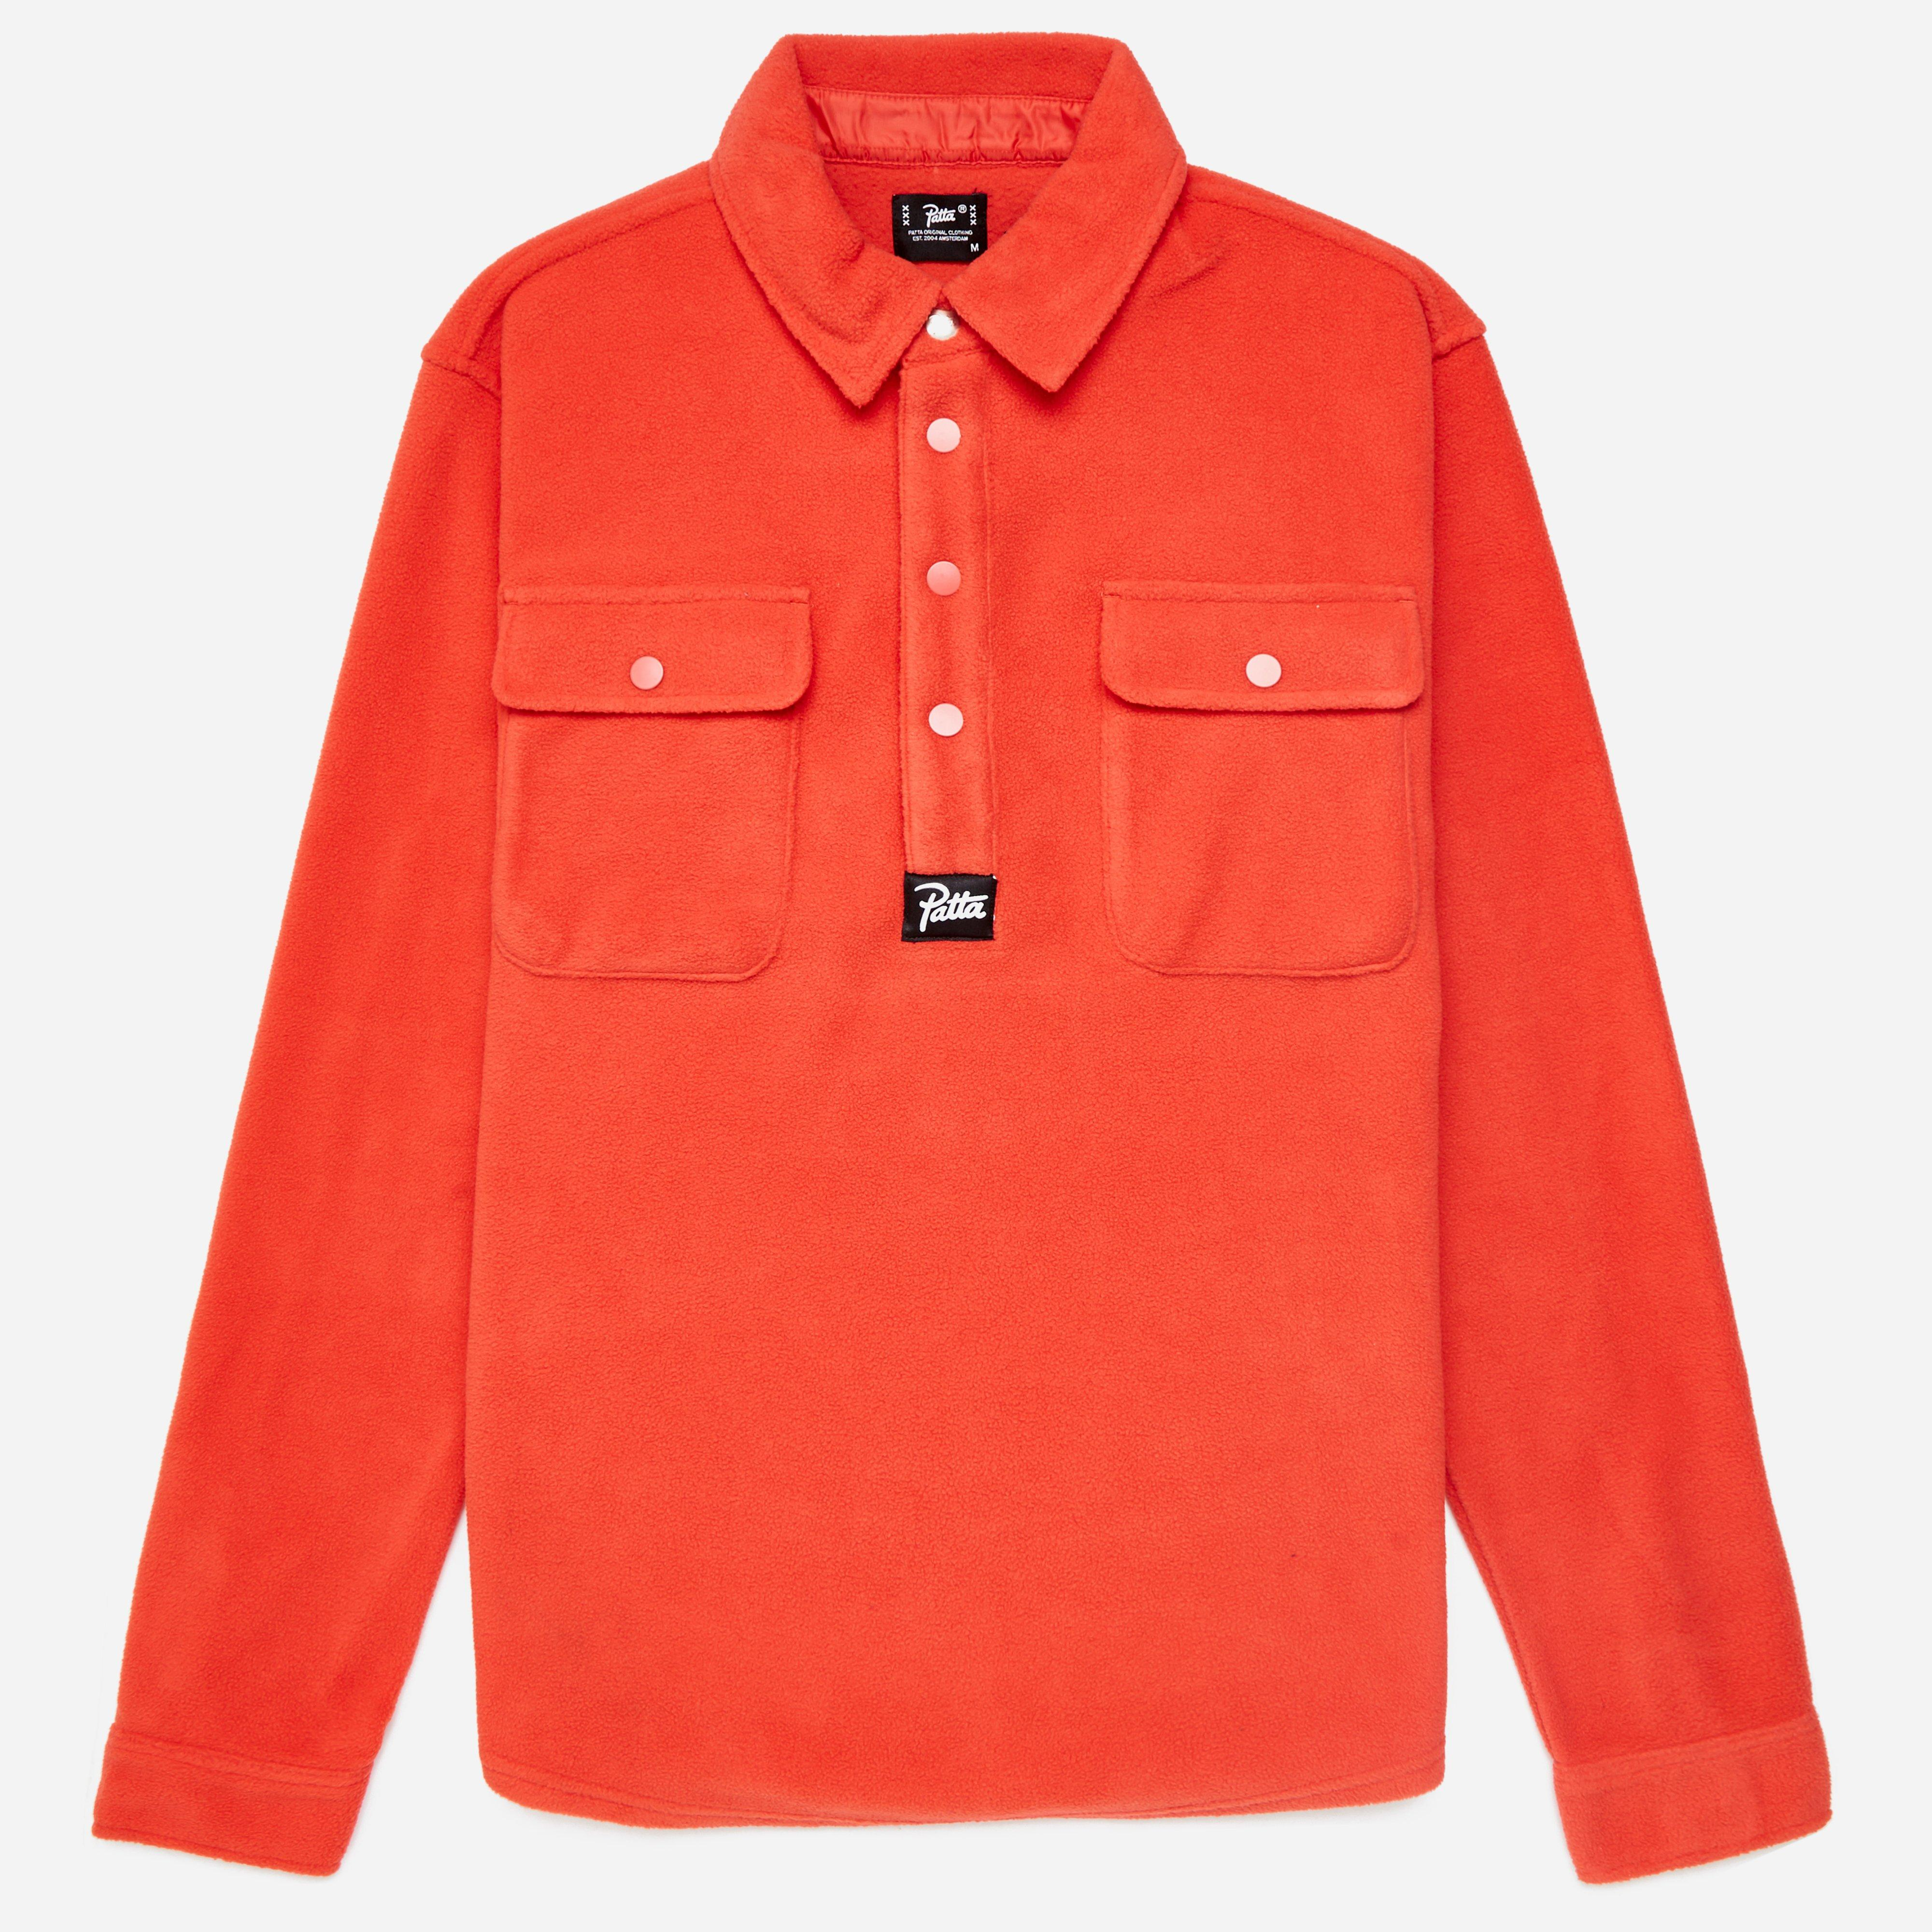 Patta Label Fleece Overhead Shirt